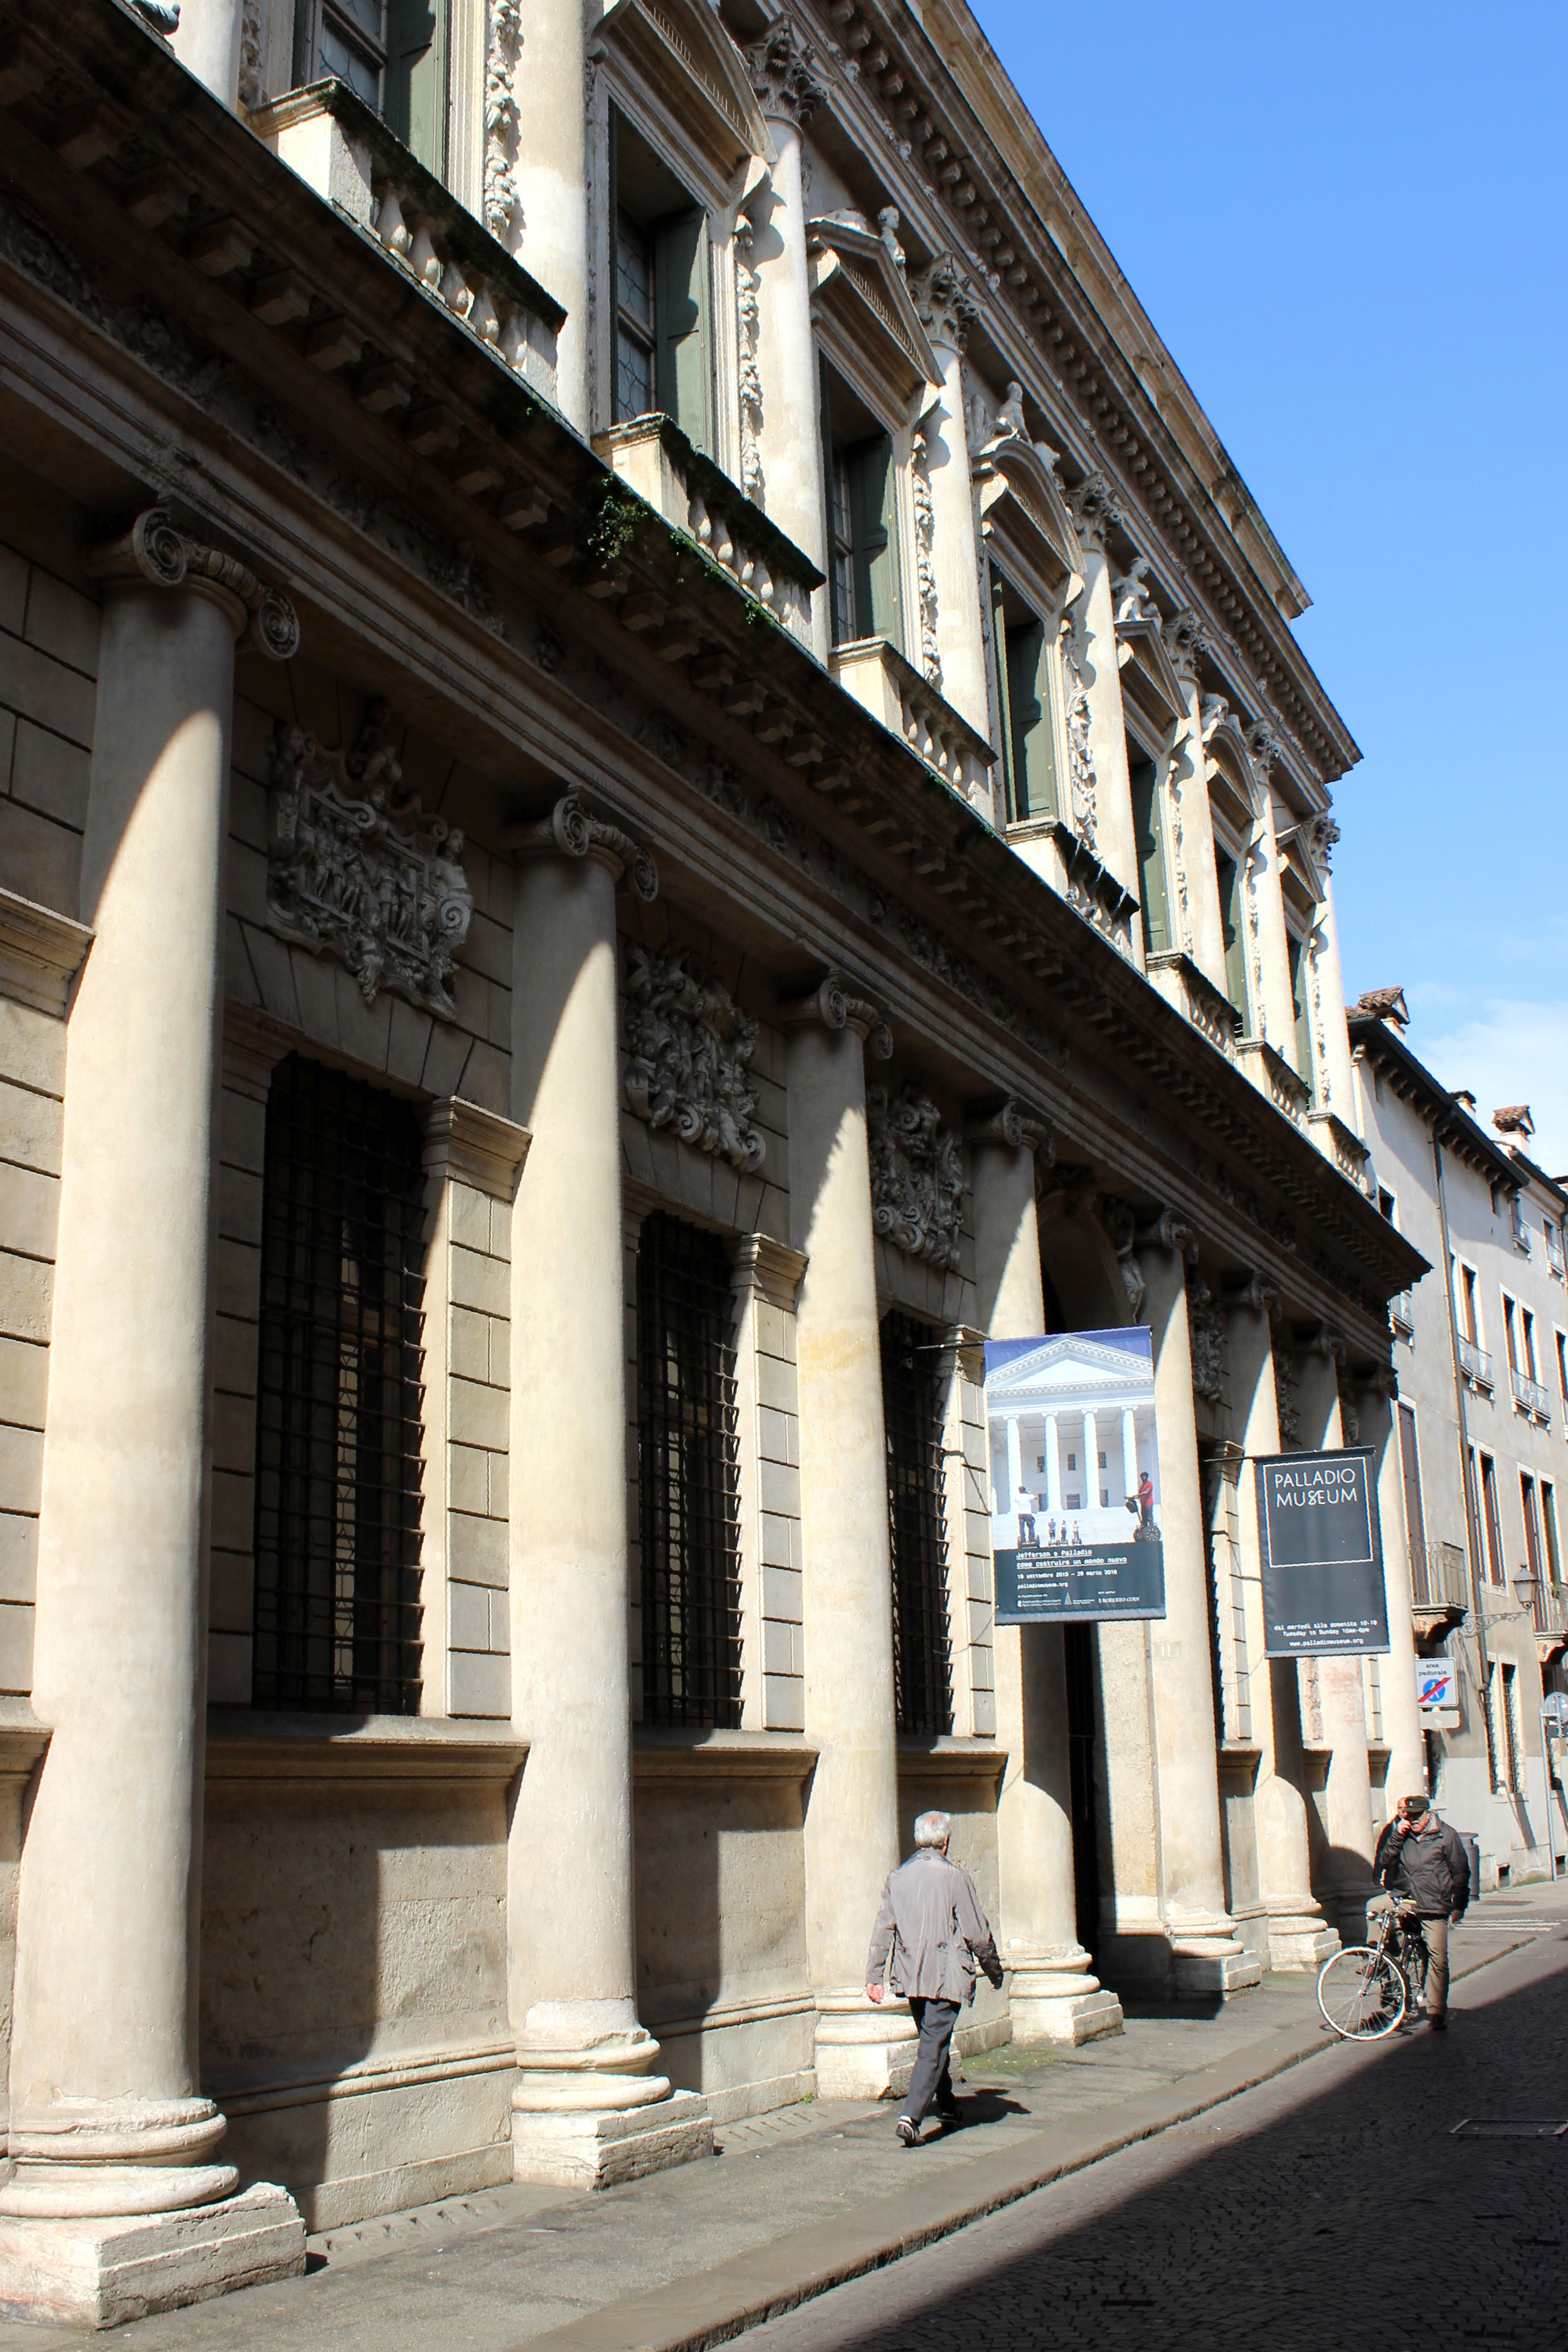 The Palladio Museum in Vicenza, built within Palladio's Barbaran Palace.